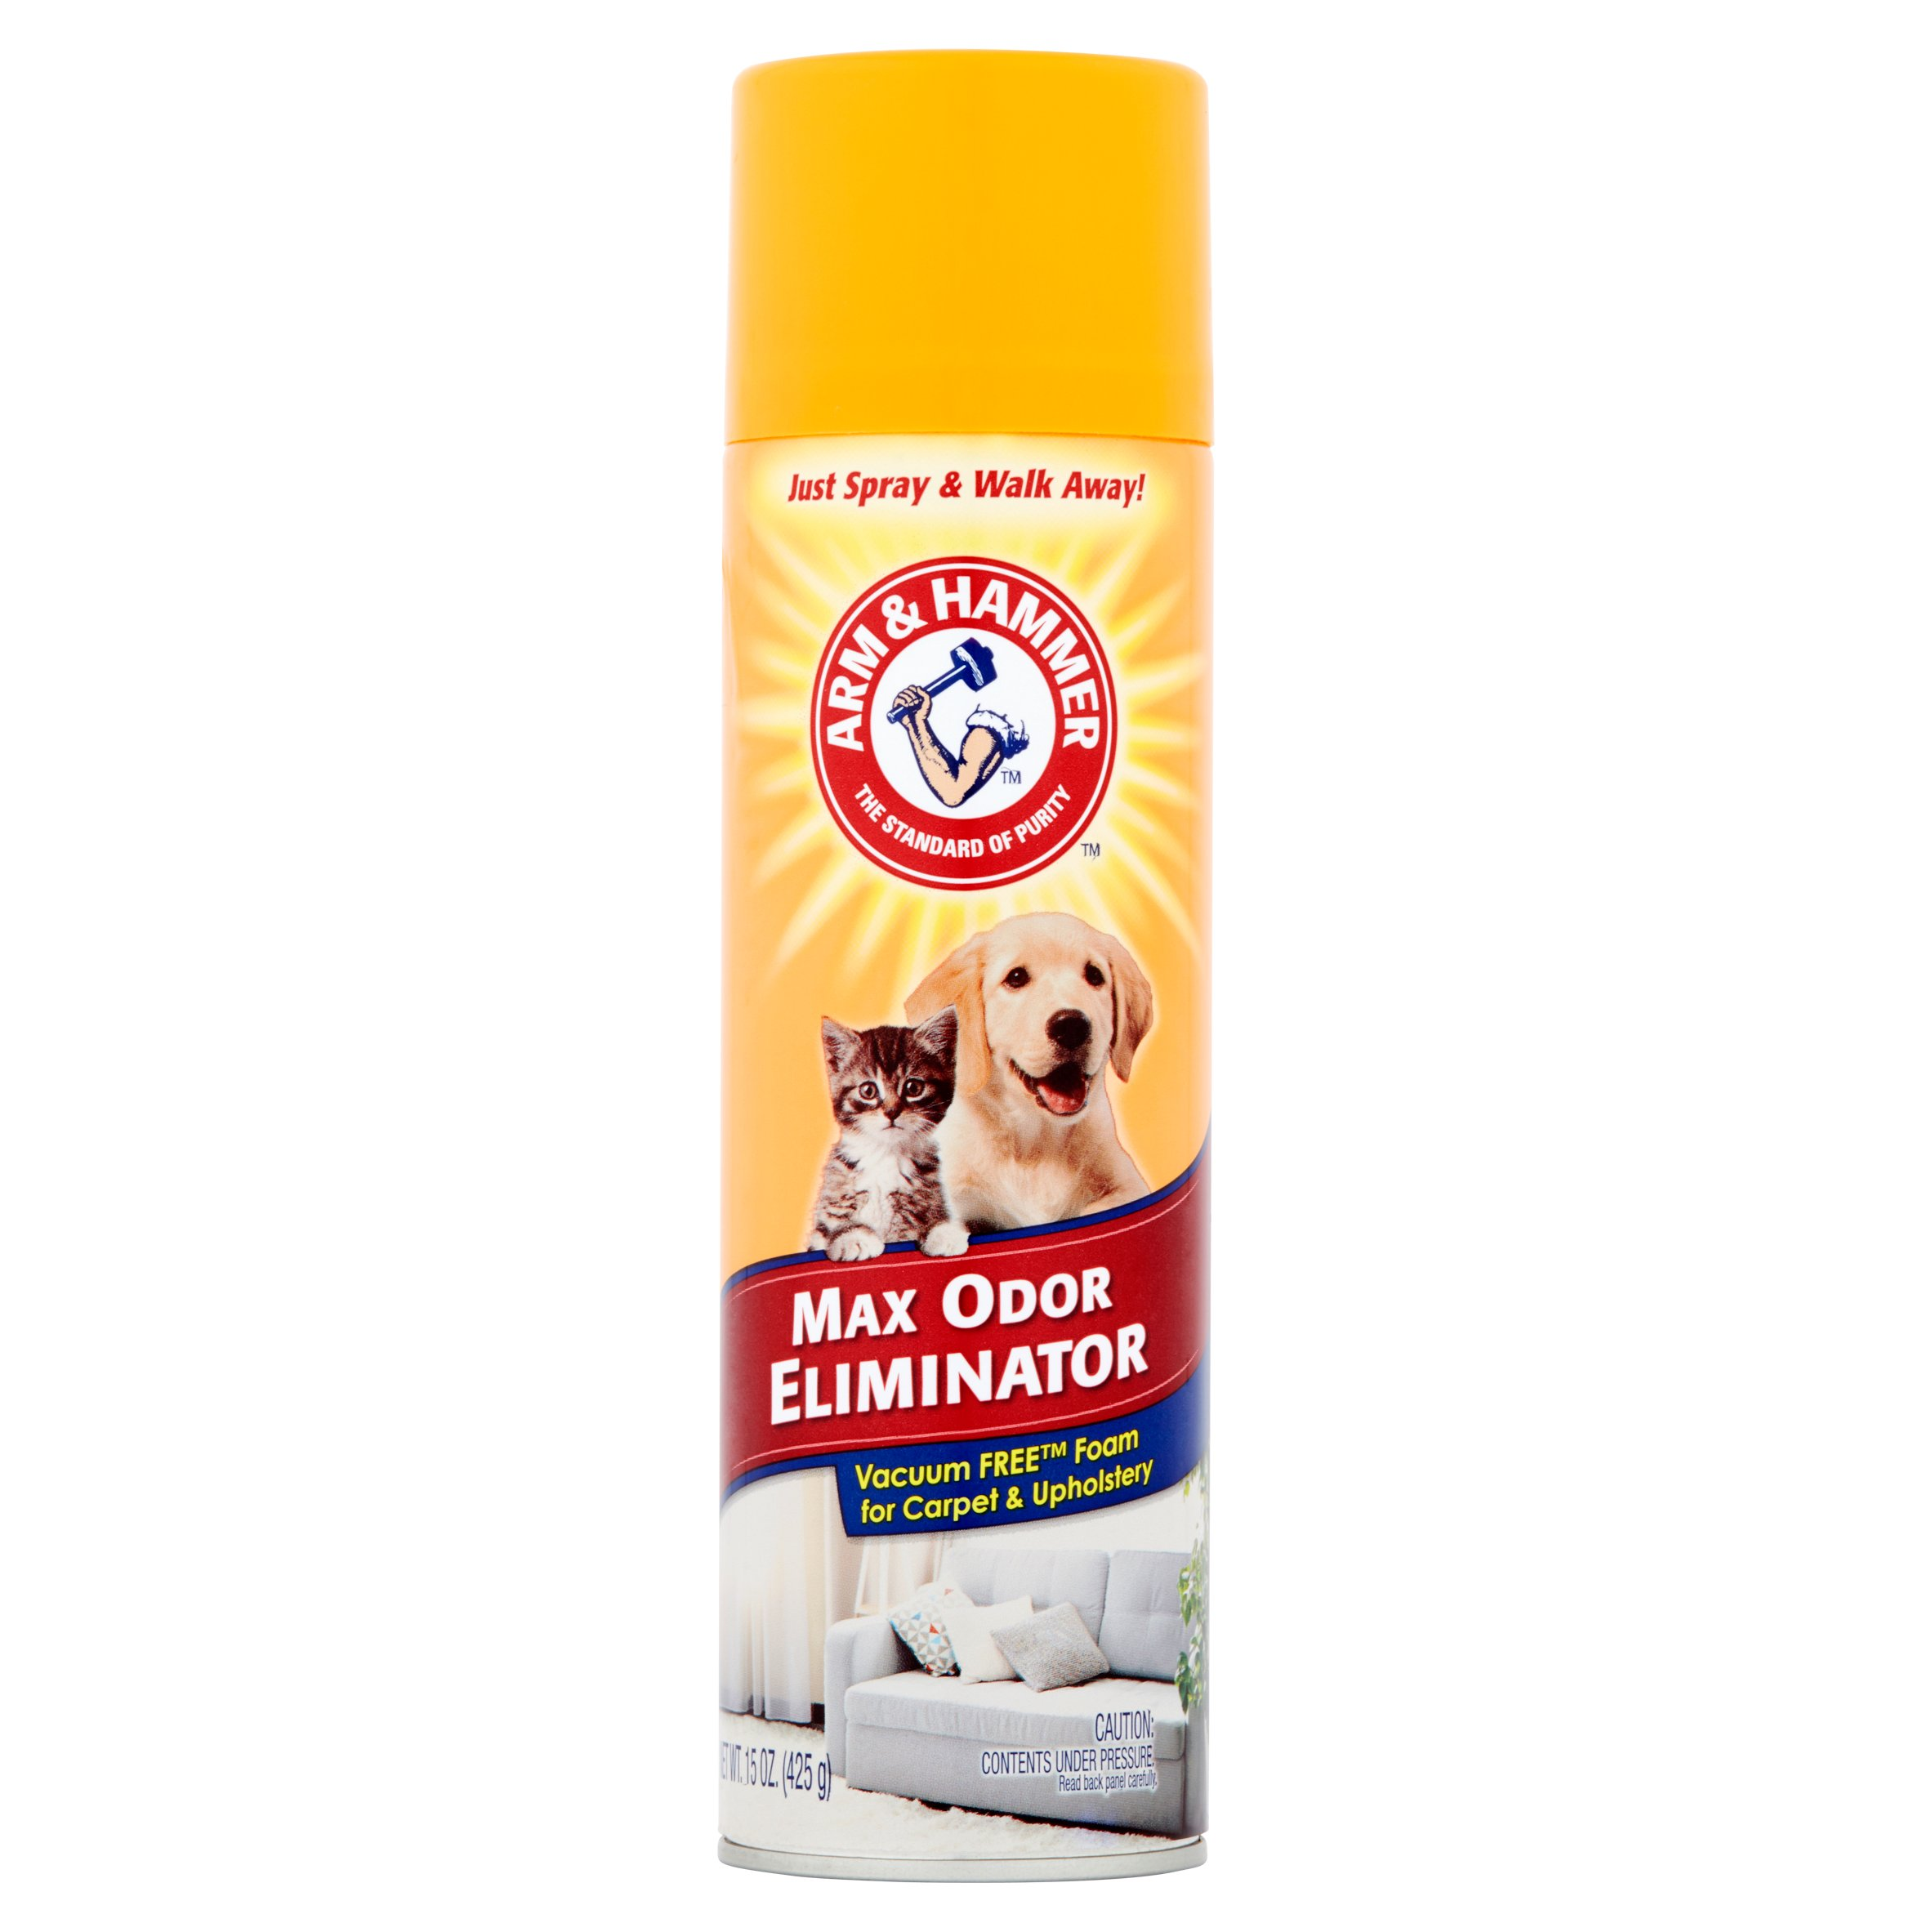 Arm & Hammer Max Odor Eliminator, Vacuum Free Foam for Carpet & Upholstery, 15 Oz.